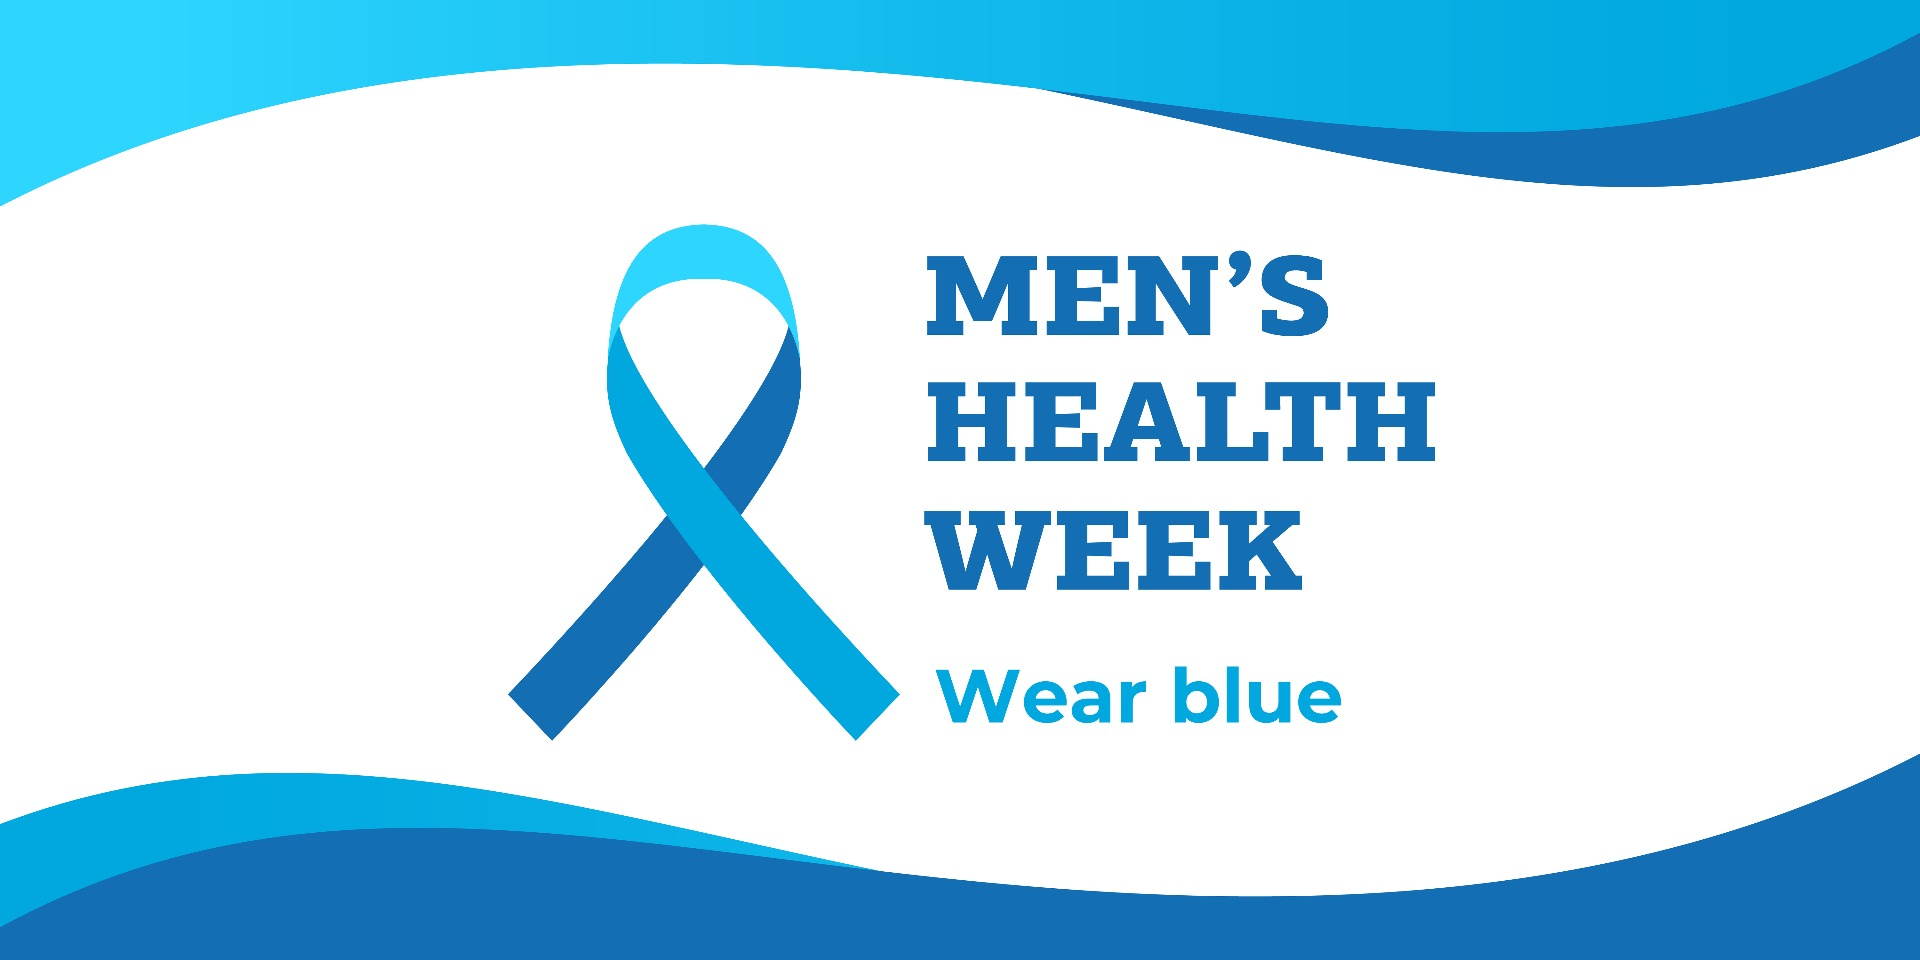 Blue & white graphic with ribbon asking supporters to wear blue for Men's Health Week